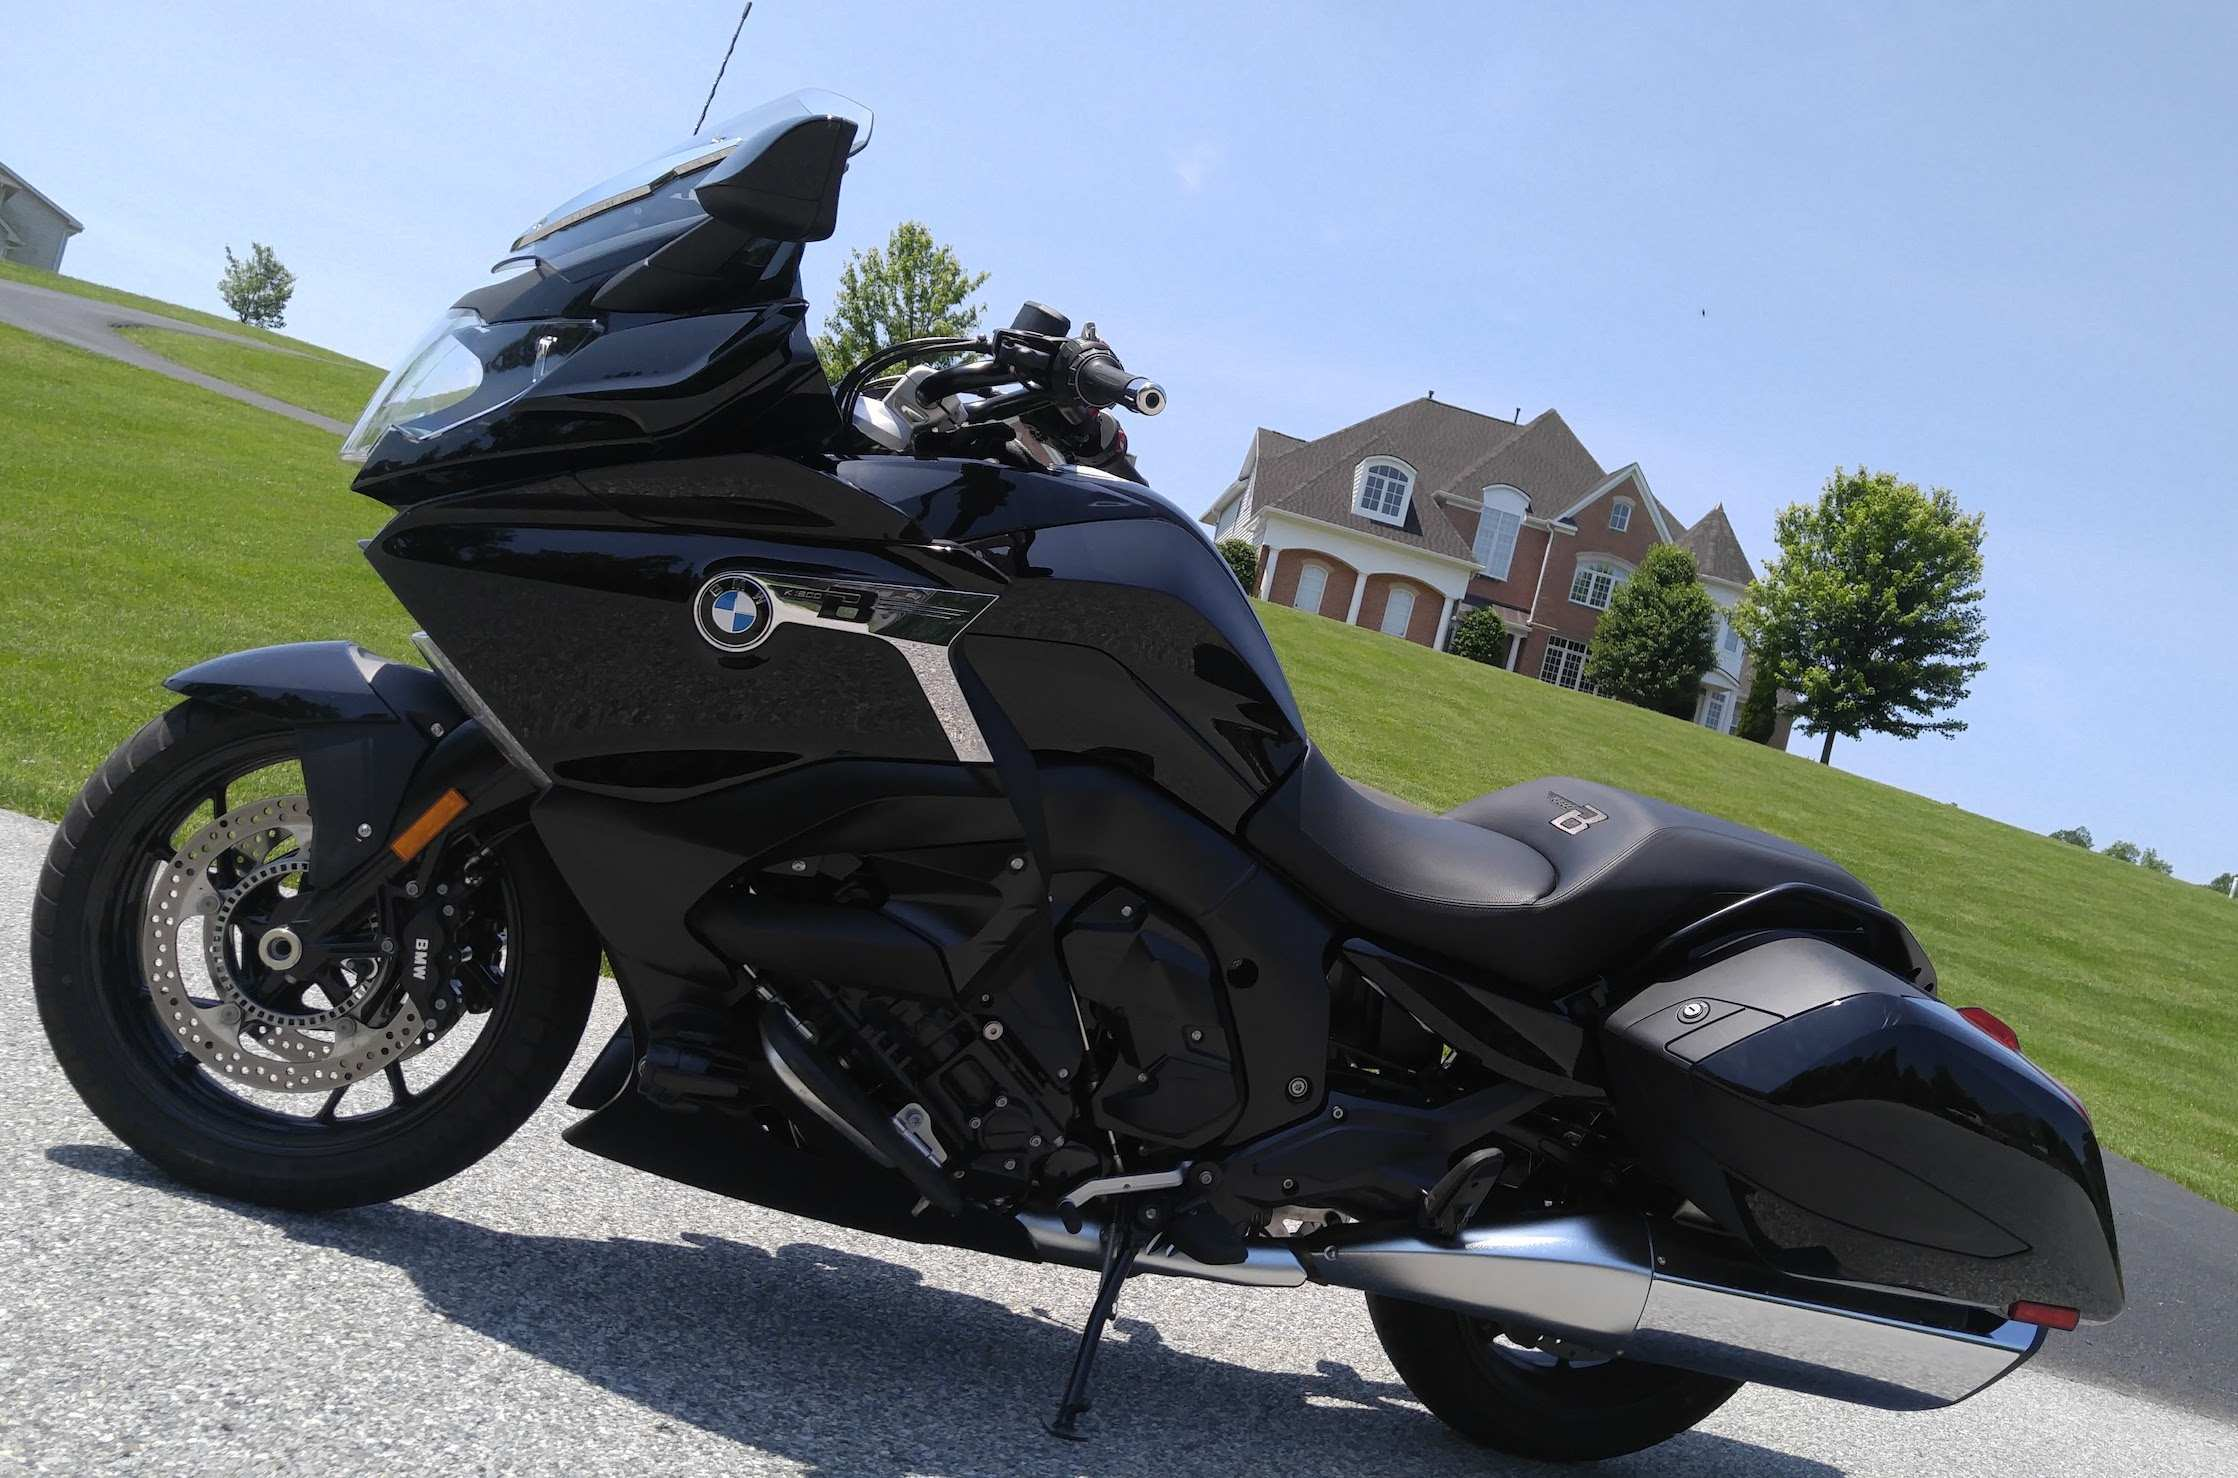 41 Best Review BMW K1600B 2020 Pictures for BMW K1600B 2020